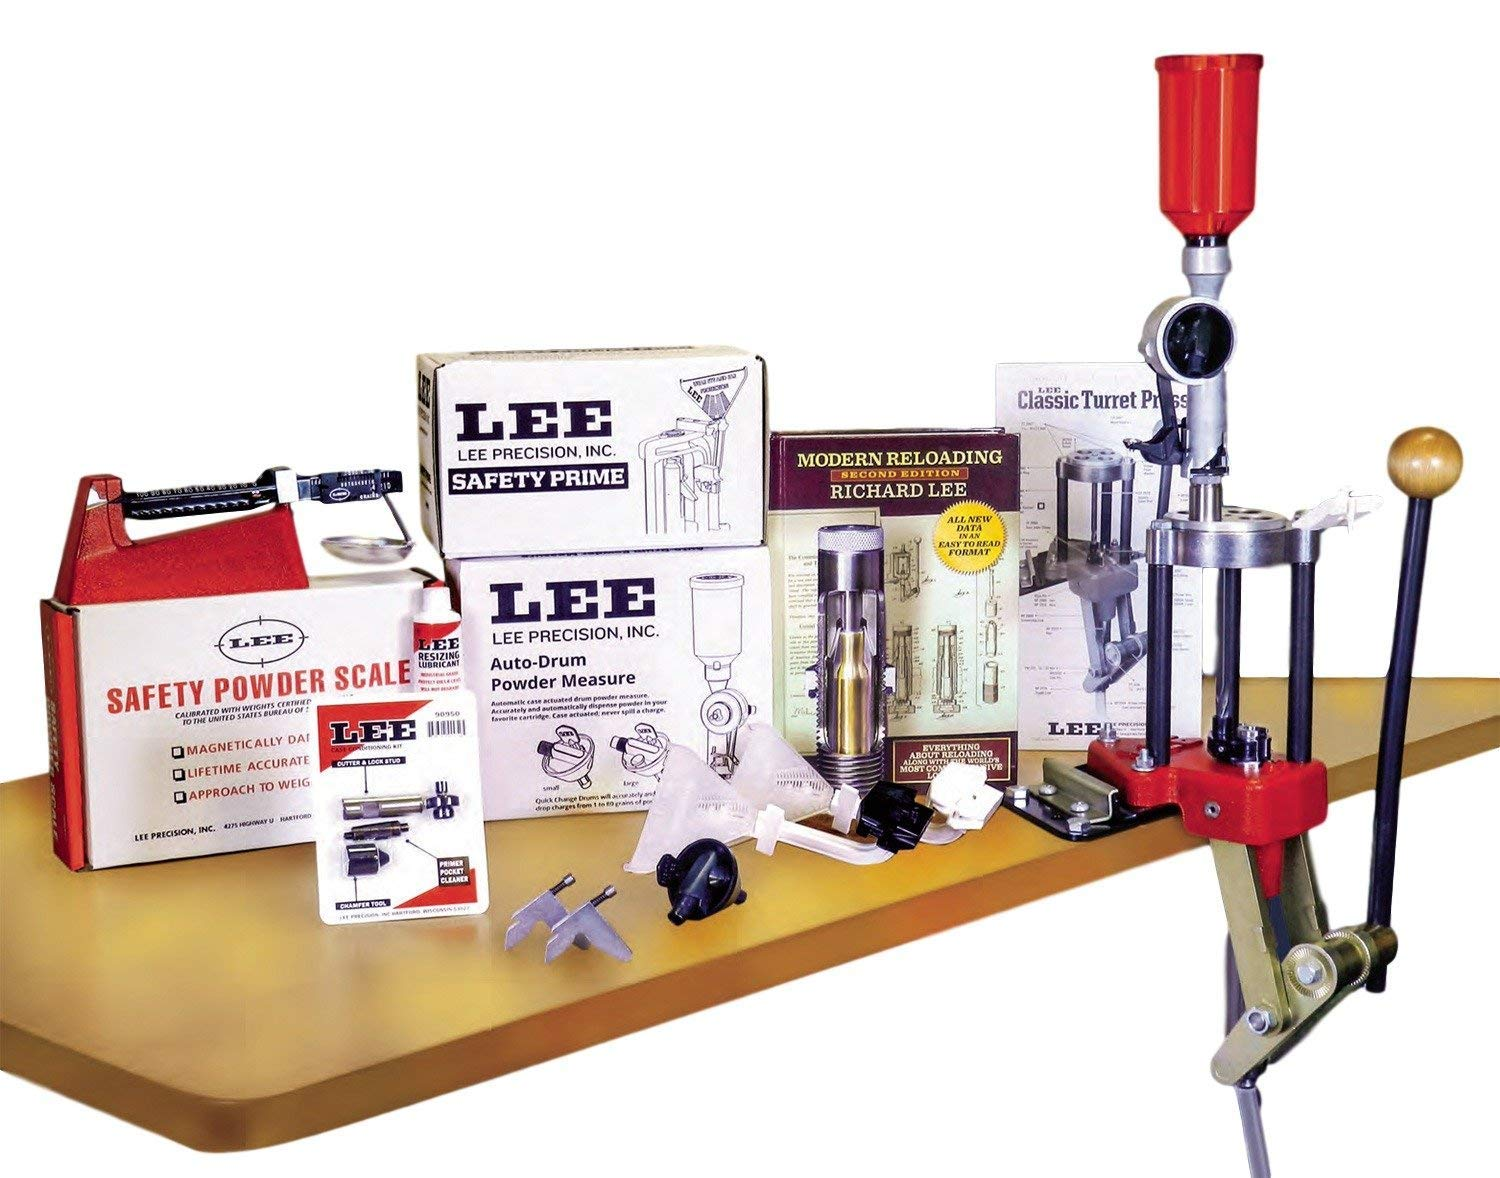 LEE PRECISION Classic Turret Press Kit (Pack of 2.) by LEE PRECISION